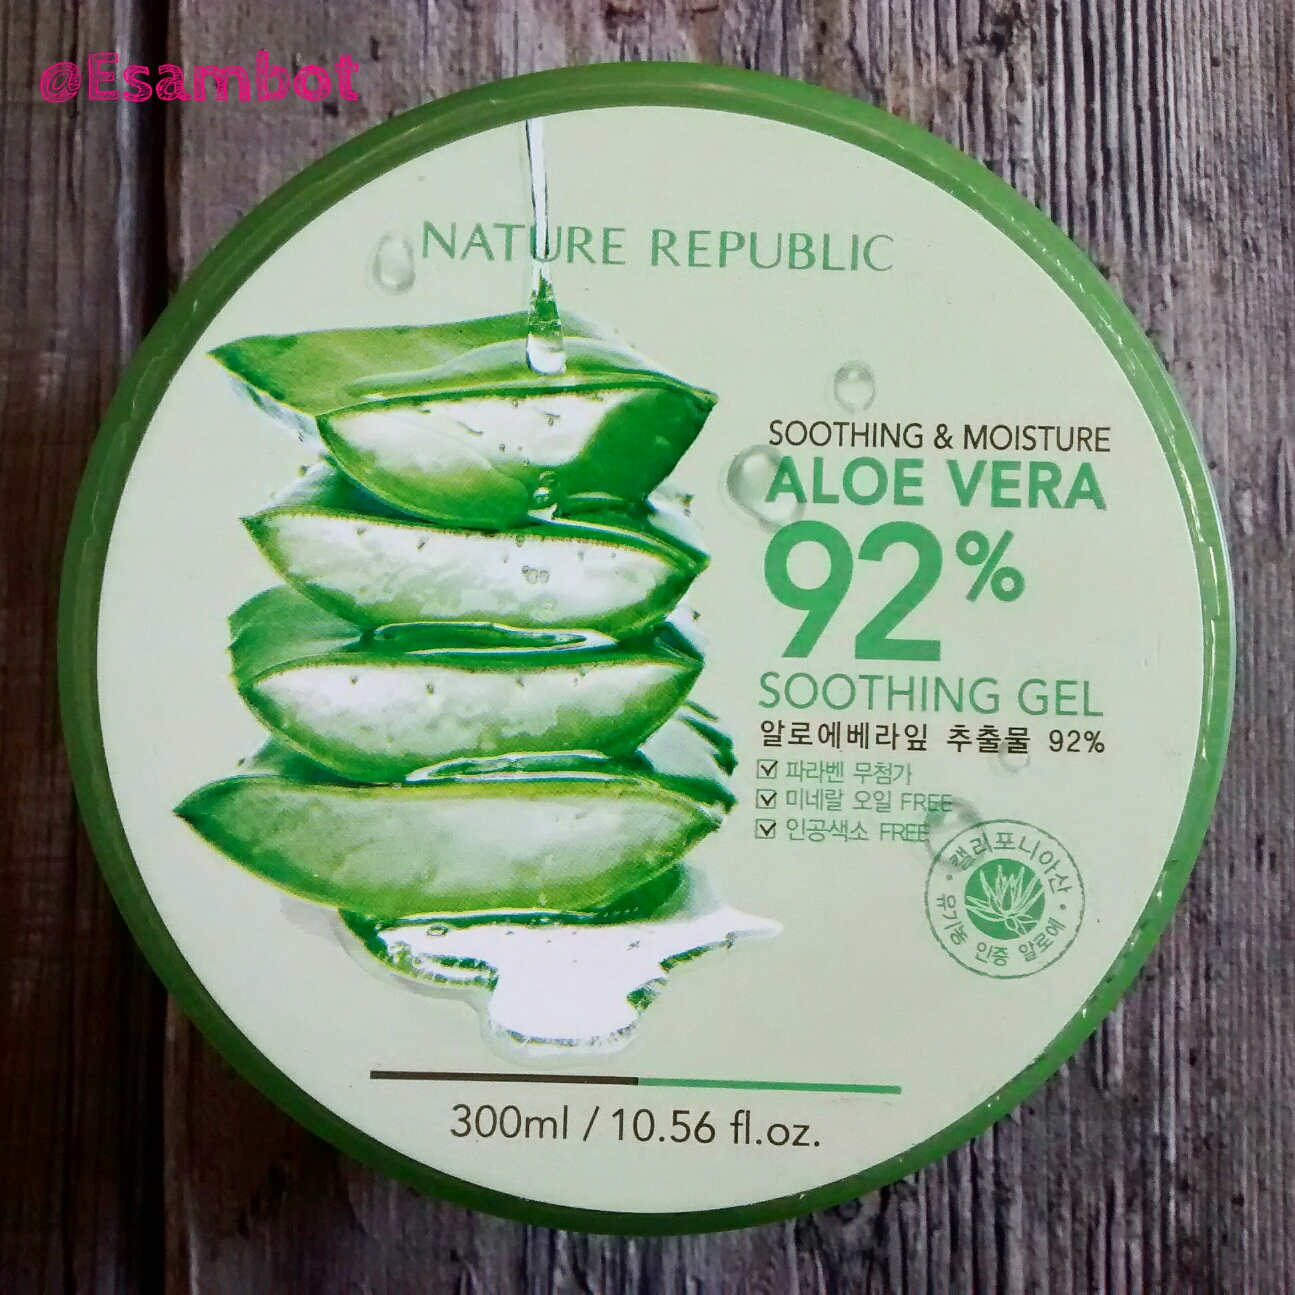 Nature republic soothing and moisture aloe vera 92 soothing gel 300ml - Product Review Aloe Vera Soothing Gel 92 By Nature Republic